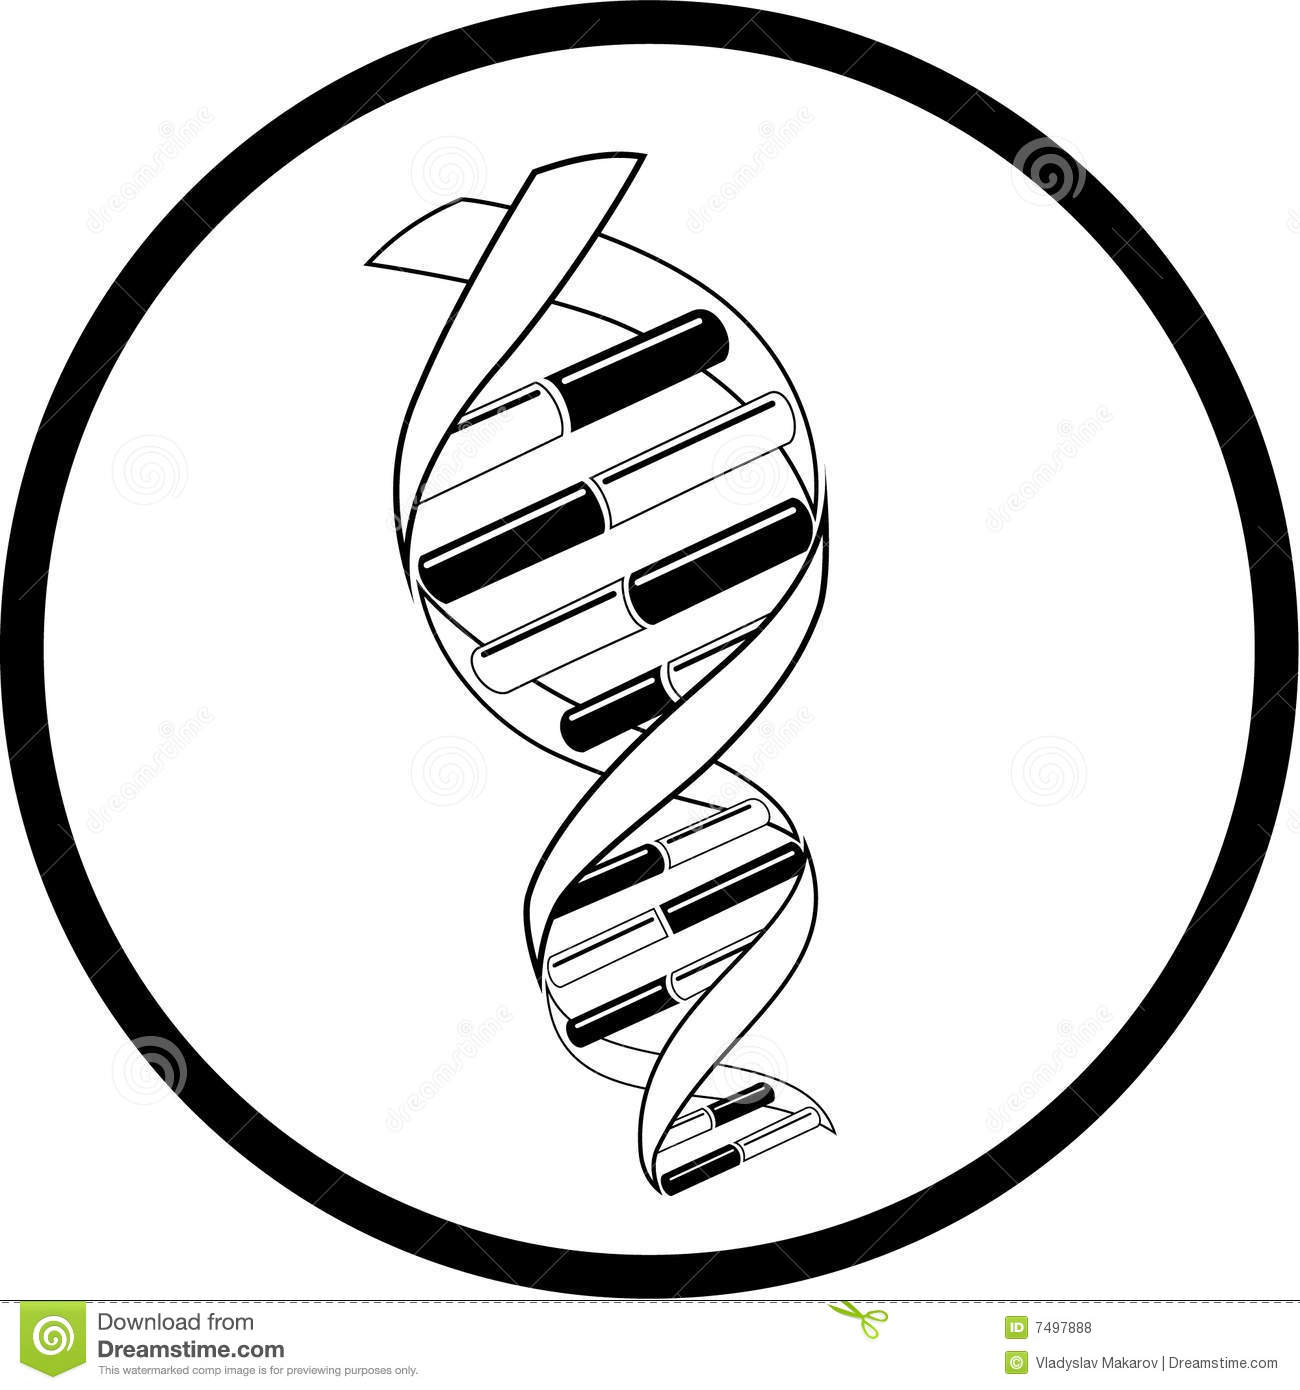 1050 Dna free clipart.